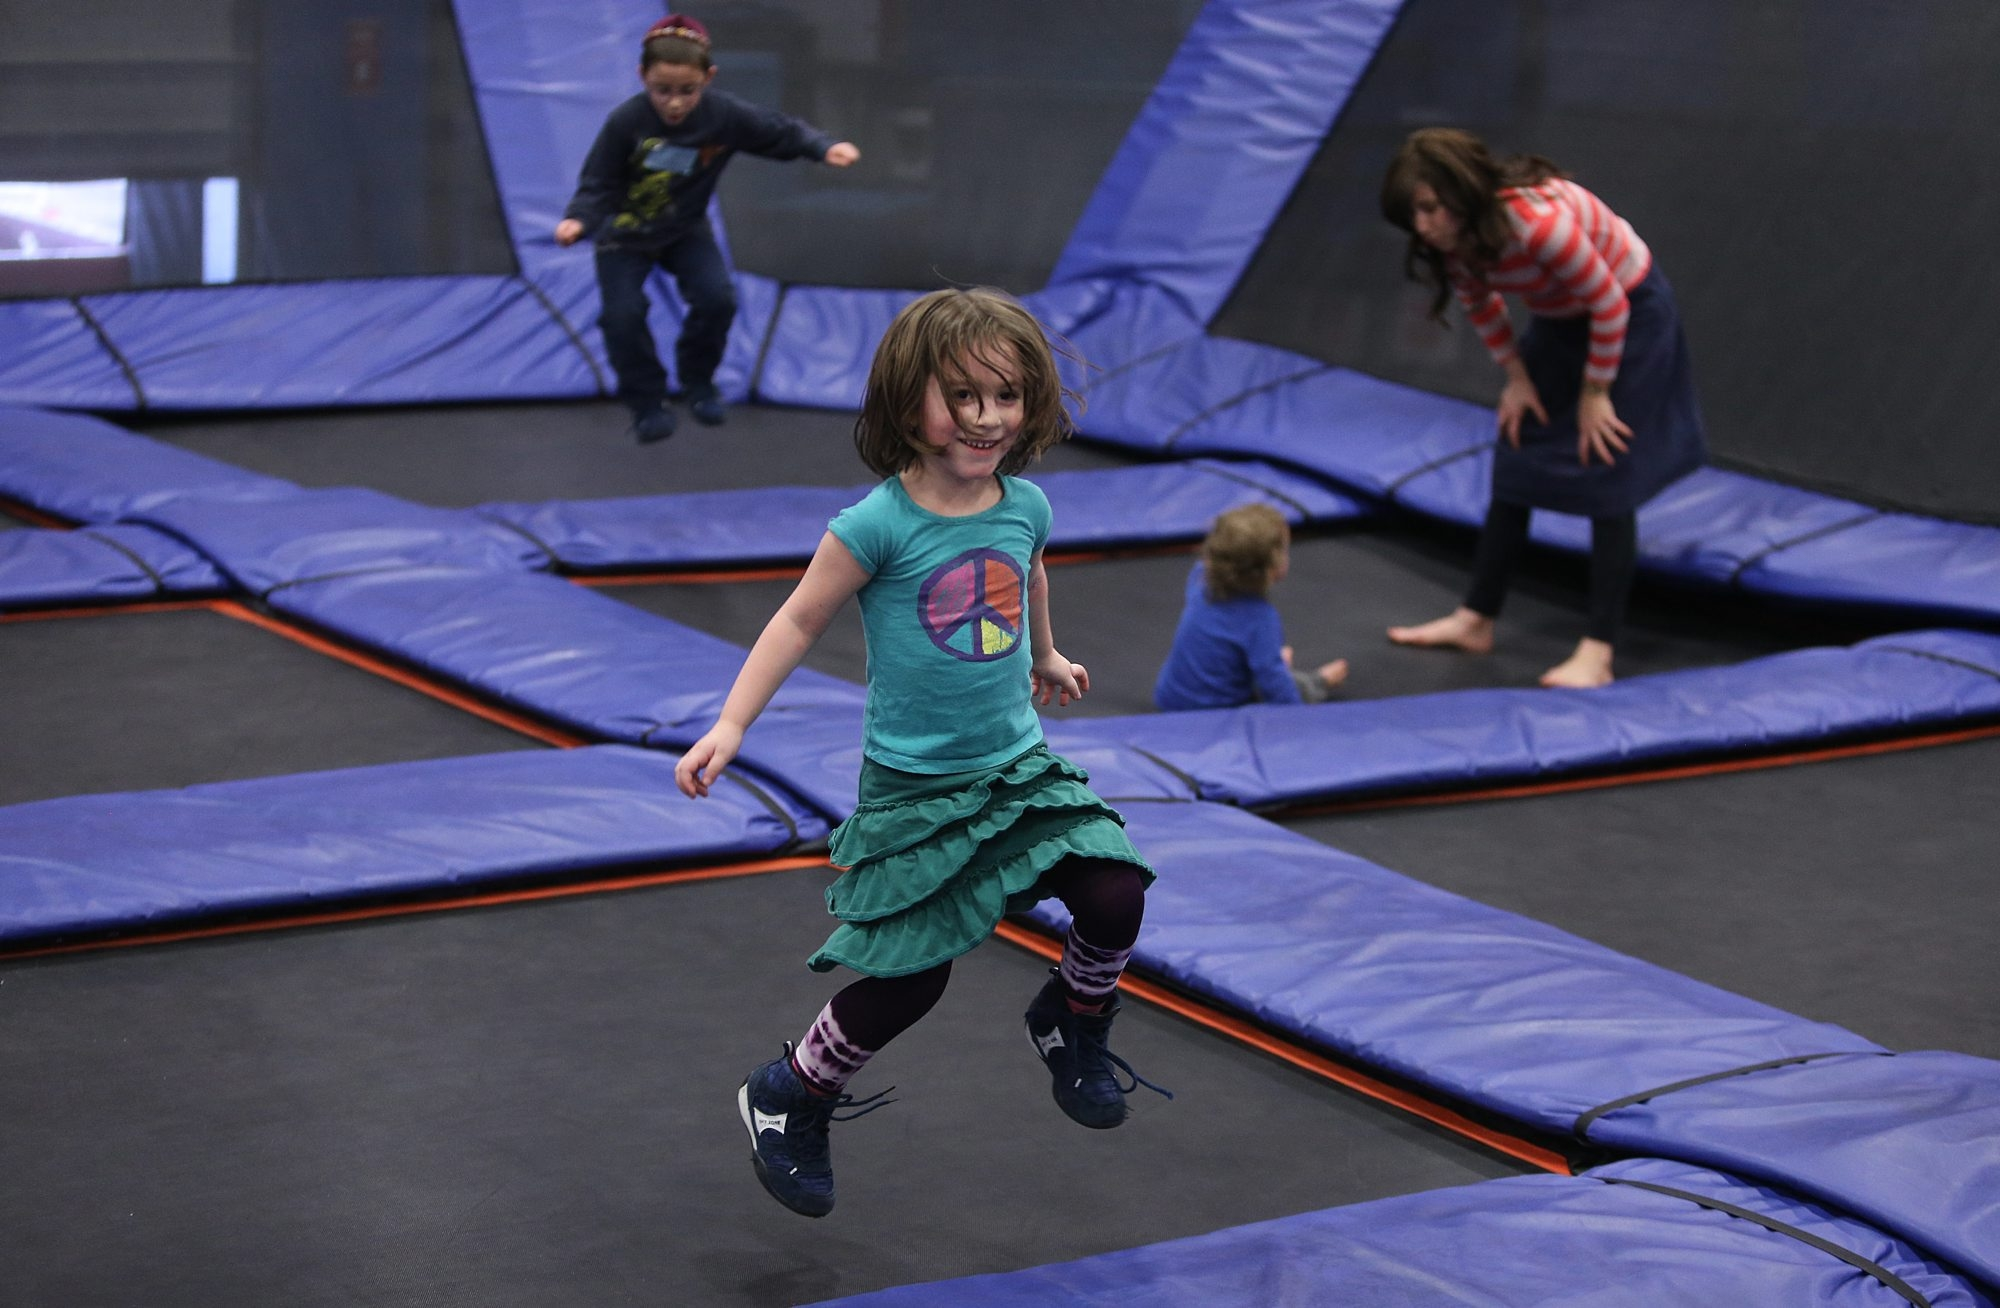 Rivkah Burston, 4, of Monroe, N.Y., has fun bouncing in the 'toddler' area at Sky Zone in Cheektowaga, with her family, in town visiting relatives, Friday, March, 29, 2013.  (Charles Lewis/Buffalo News)